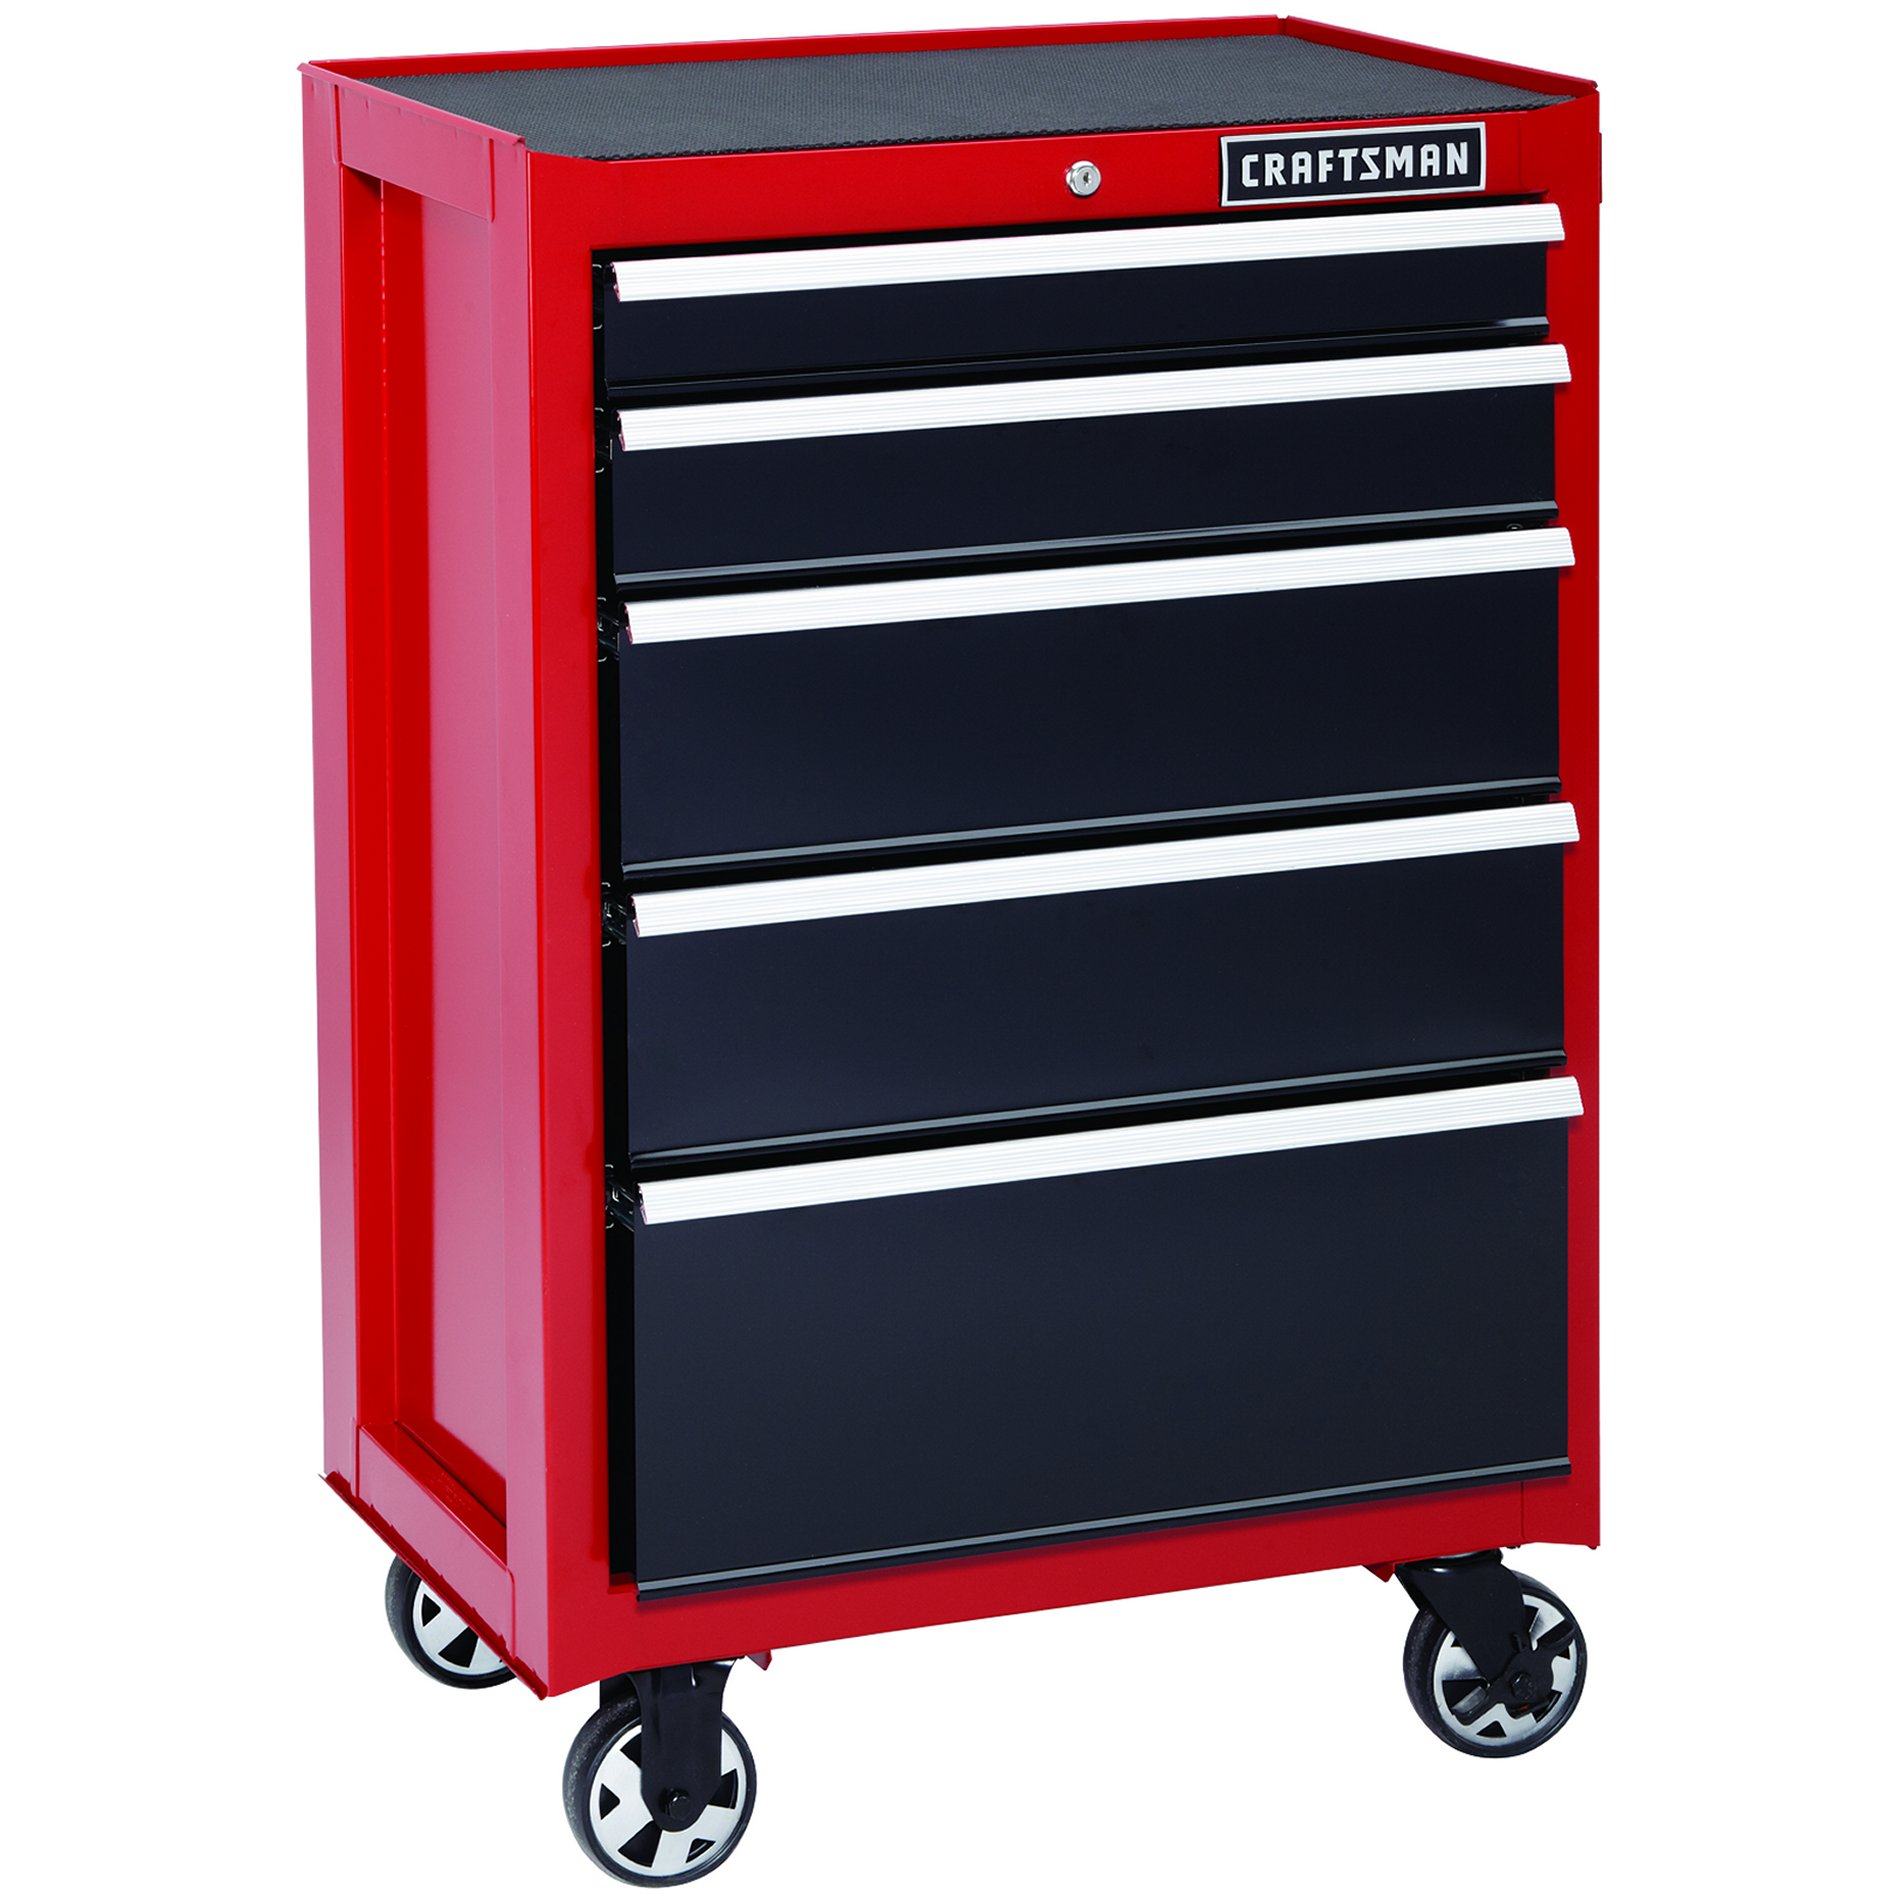 Craftsman 26 In 5 Drawer Heavy Duty Ball Bearing Rolling